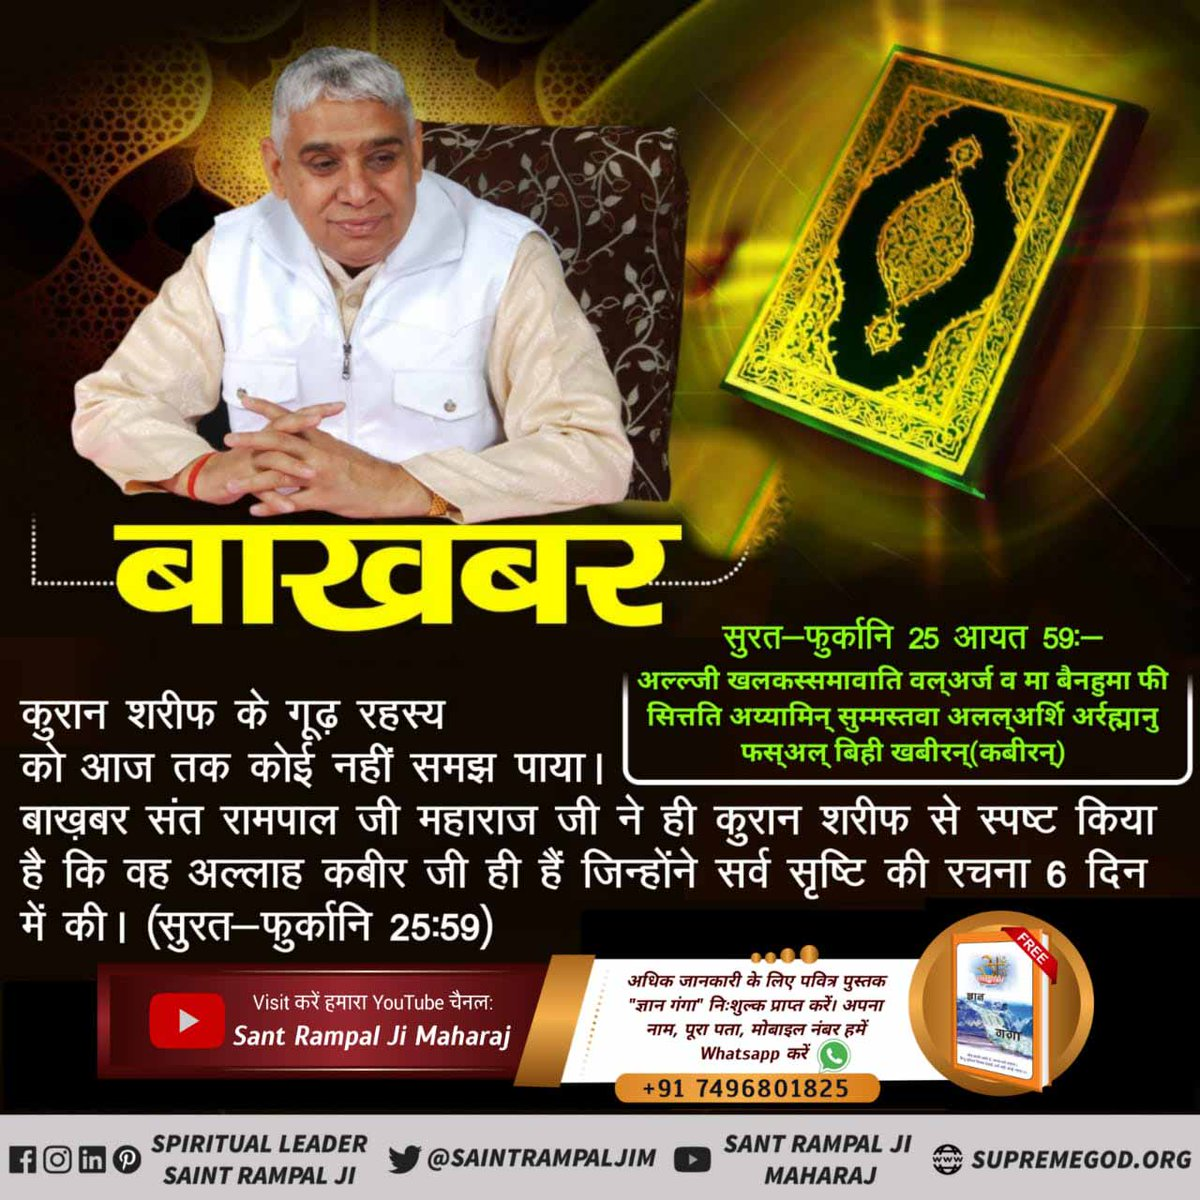 "#Kabir_is_Supreme_GodAre you finding a solution to your problems❓  Then there is a Sacred book named ""jeene ki raah"" written by @SaintRampalJiM which will definitely solve your all problems.  #GodMorningFriday #FridayVibes #FridayMotivation #FridayThoughts #fridaymorning"